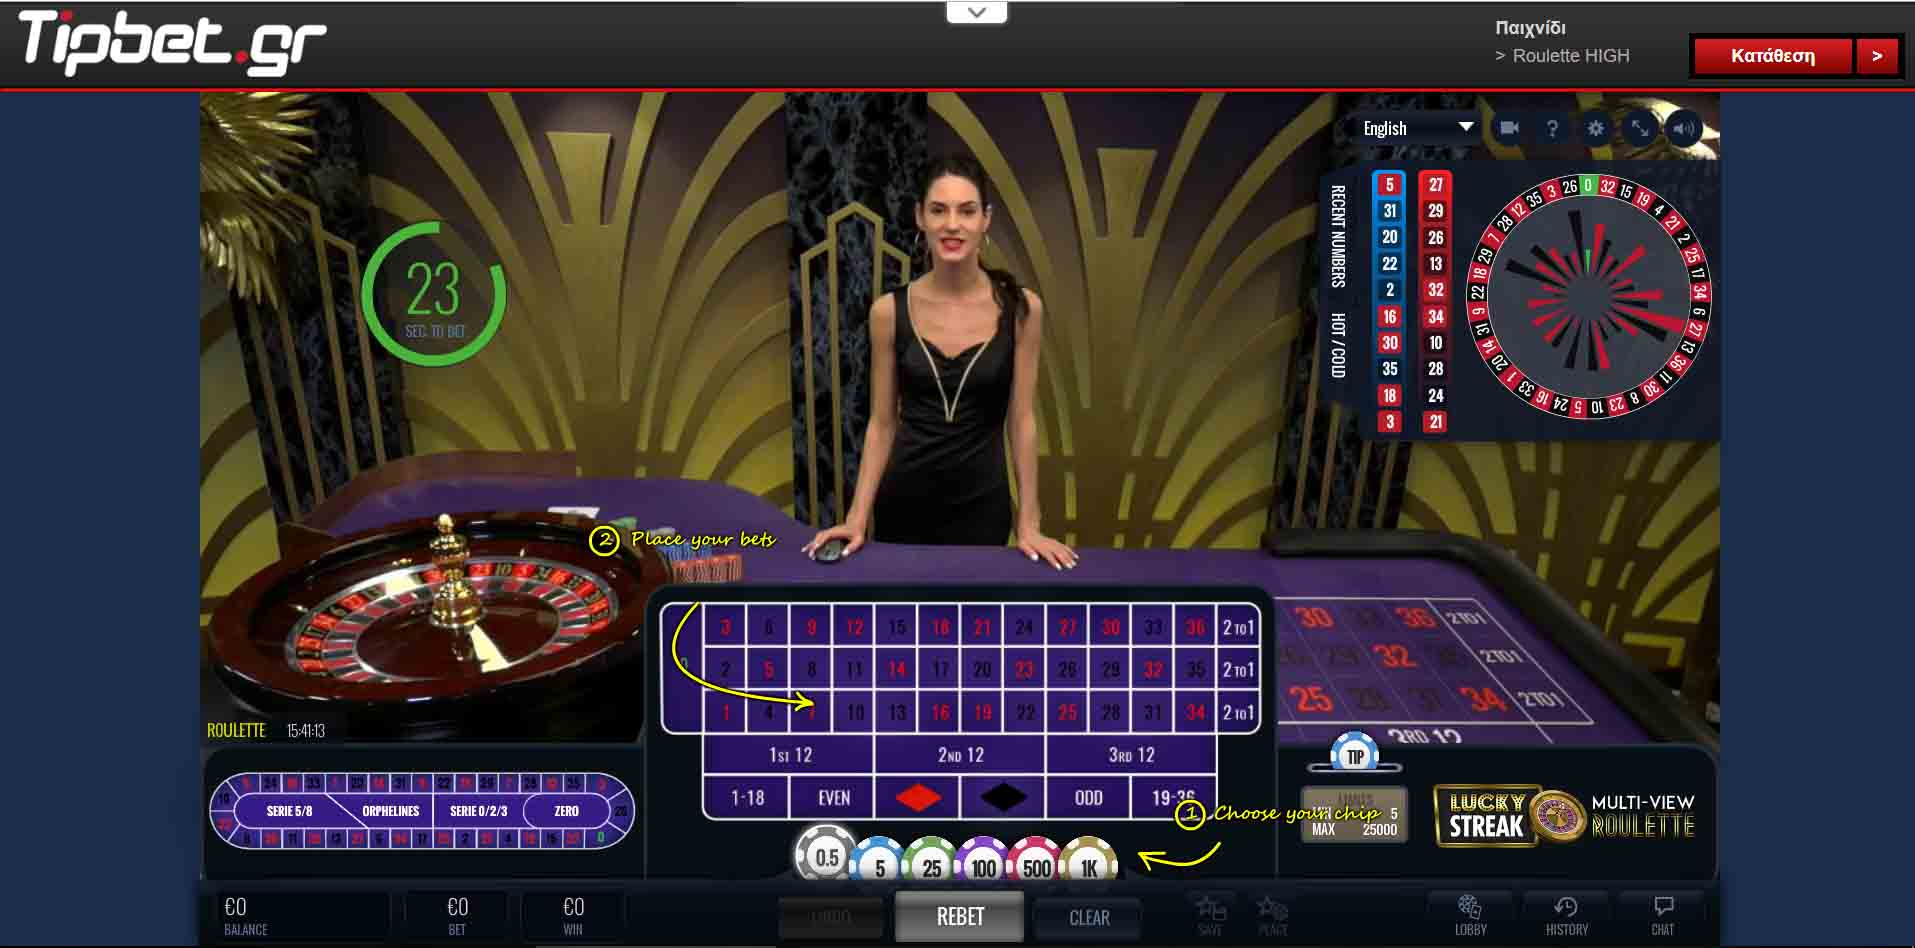 tipbet live casino luckystreak roulette